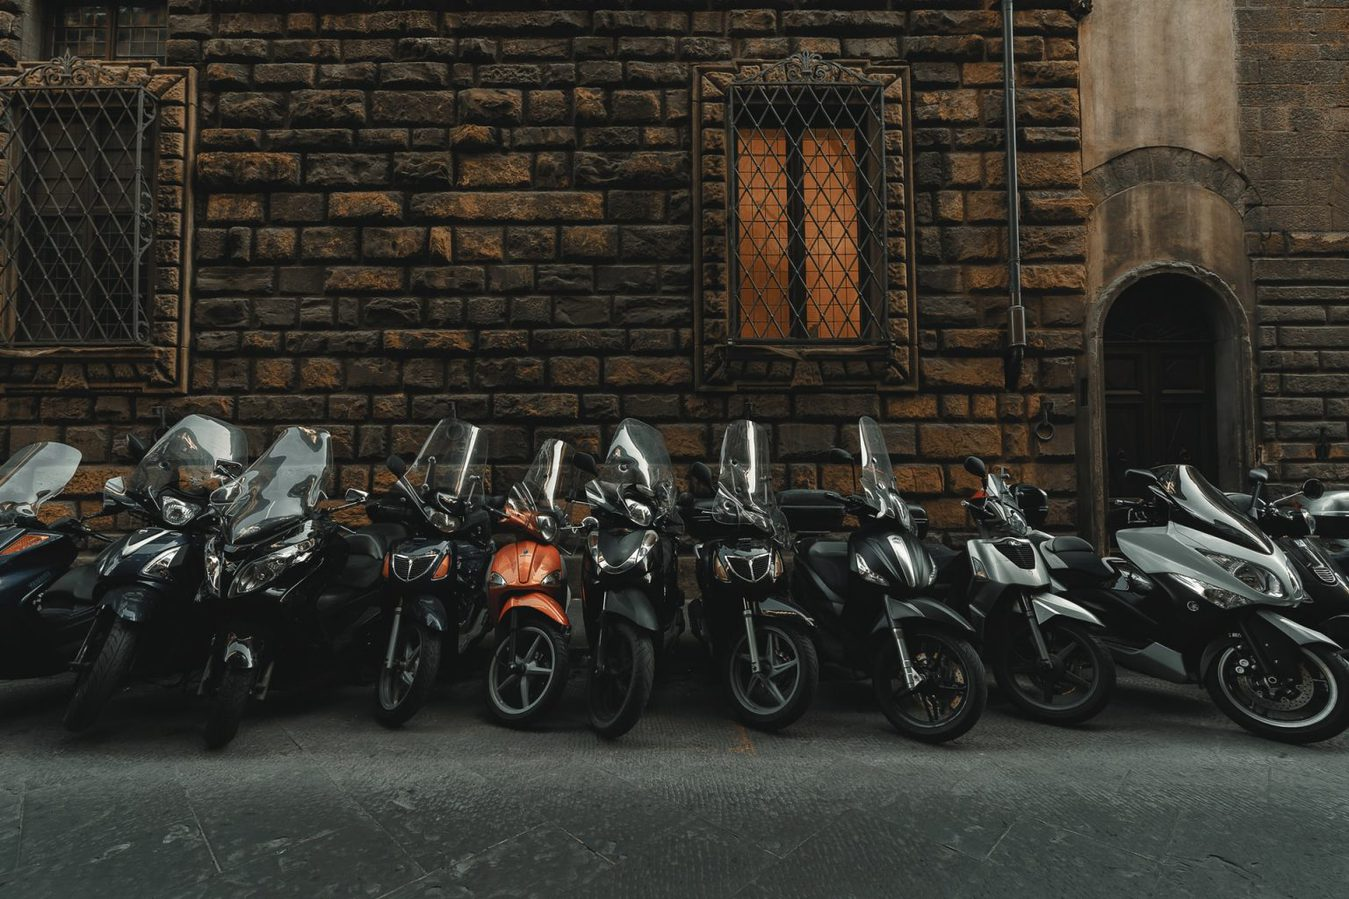 Mopeds standing at a brick wall